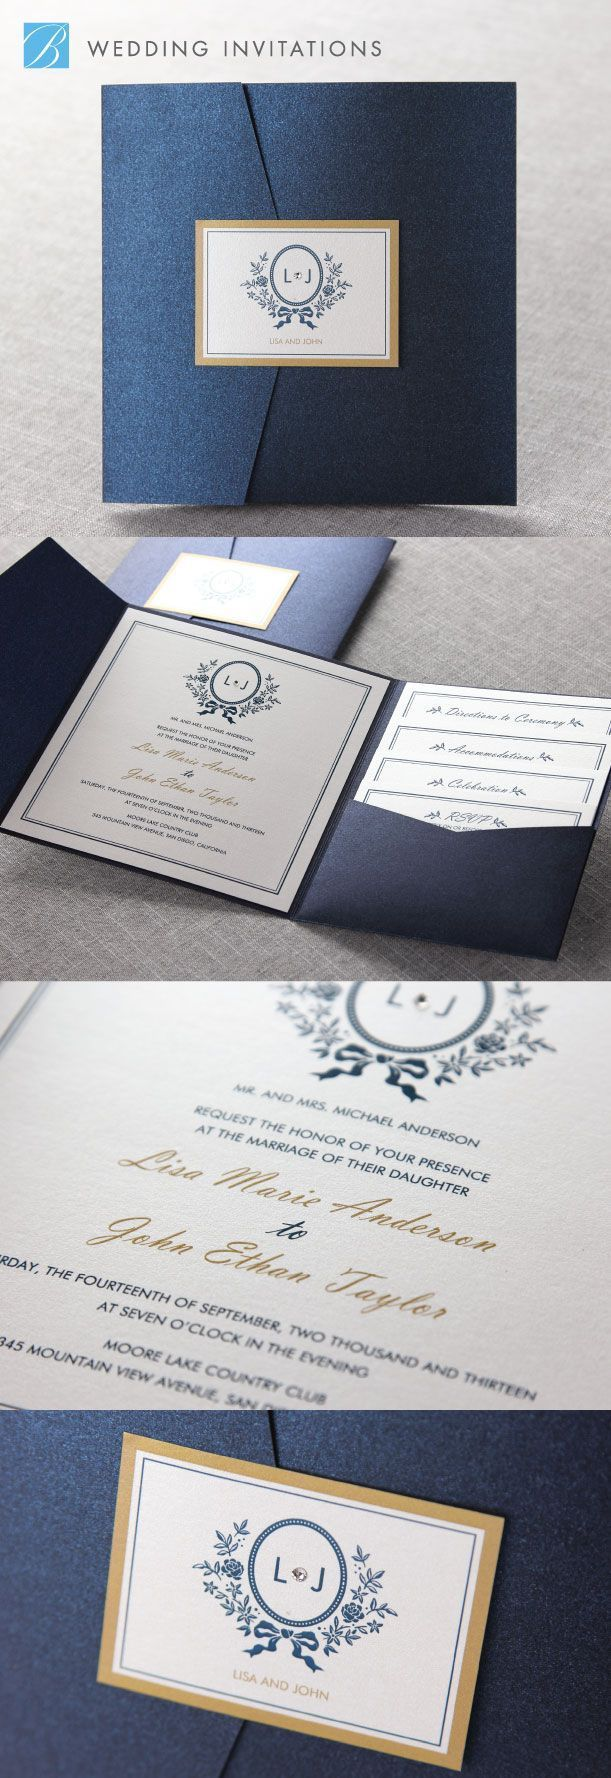 Old Fashioned Romance 1 by B Wedding Invitations THIS IS THE ONE!